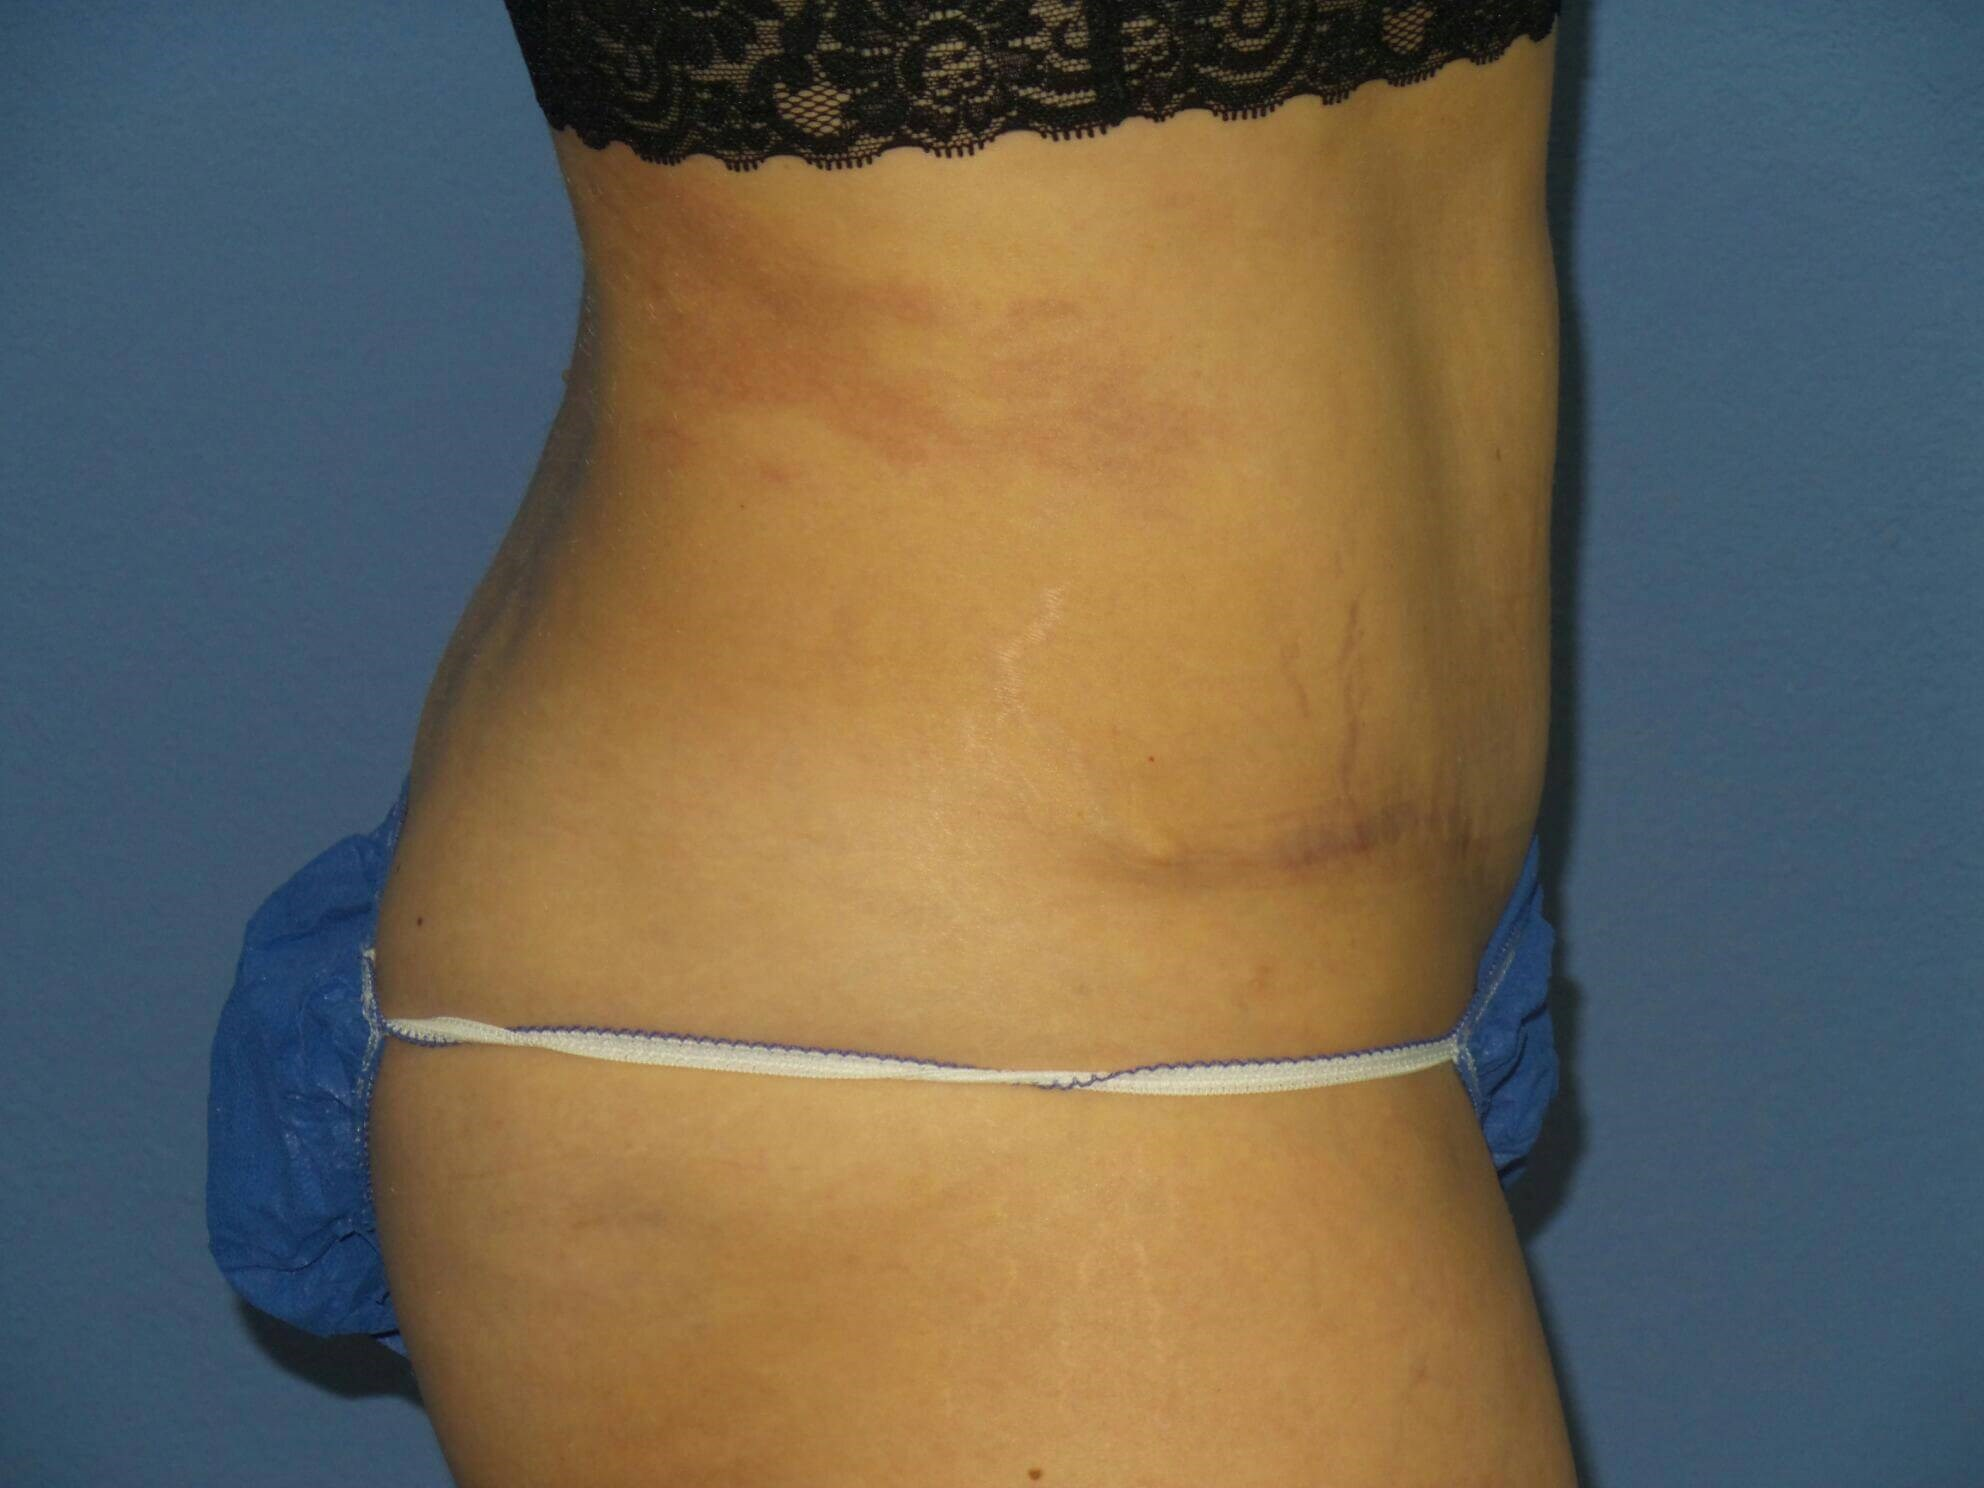 Tummy tuck results, side After